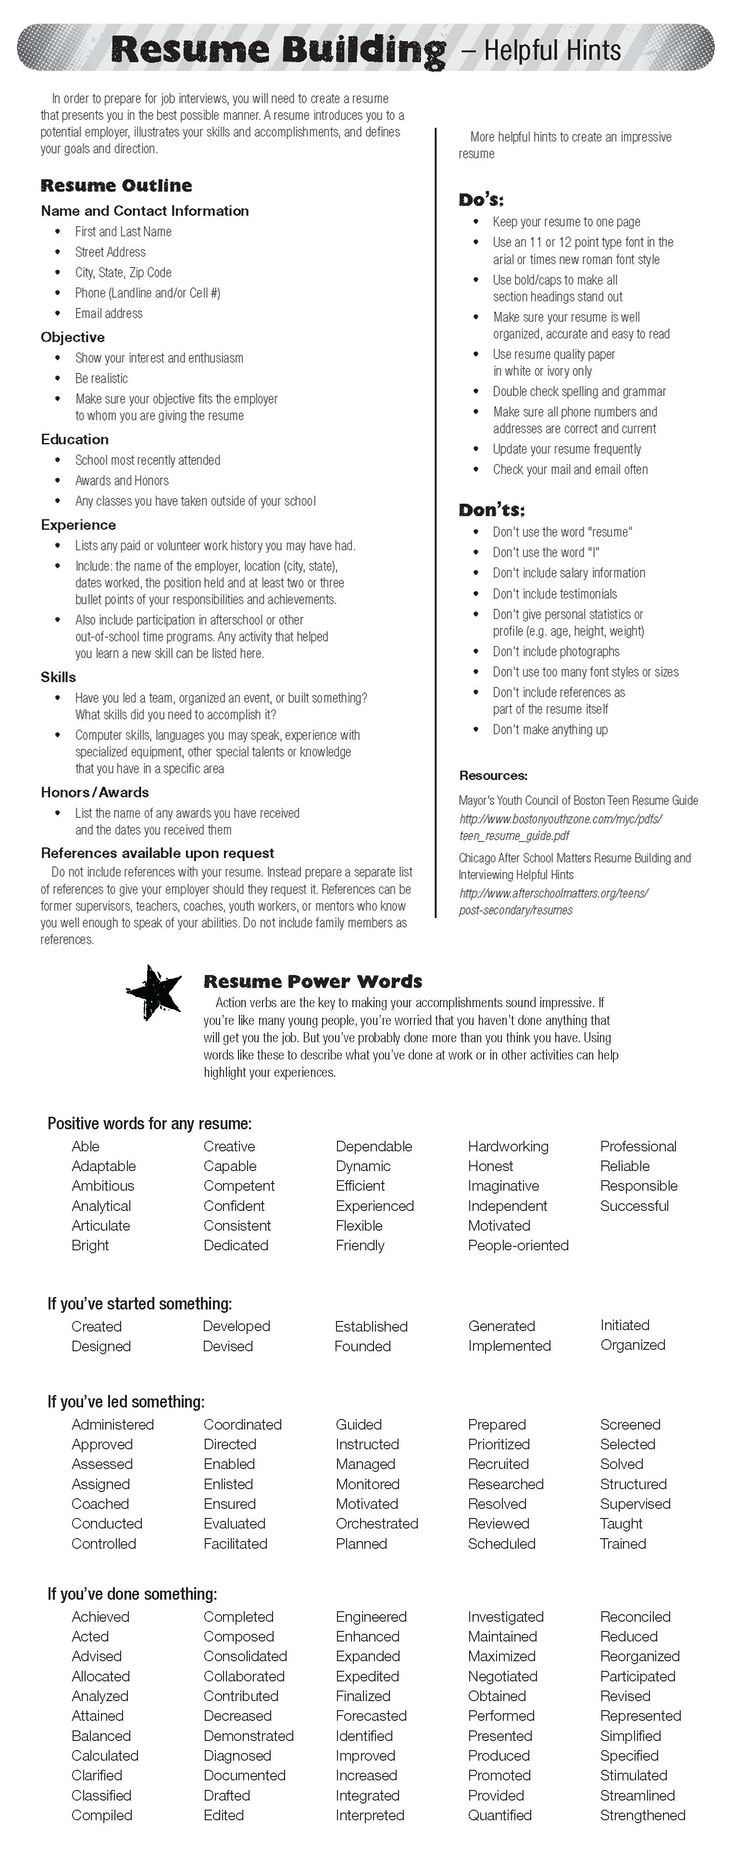 Opposenewapstandardsus  Winning  Ideas About Resume On Pinterest  Cv Format Resume  With Goodlooking Check Out Todays Resume Building Tips Resume Resumepowerwords With Beauteous Skills And Abilities Resume Also Combination Resume In Addition Resume Adjectives And Best Resume Builder As Well As How To List Education On Resume Additionally Microsoft Word Resume Templates From Pinterestcom With Opposenewapstandardsus  Goodlooking  Ideas About Resume On Pinterest  Cv Format Resume  With Beauteous Check Out Todays Resume Building Tips Resume Resumepowerwords And Winning Skills And Abilities Resume Also Combination Resume In Addition Resume Adjectives From Pinterestcom